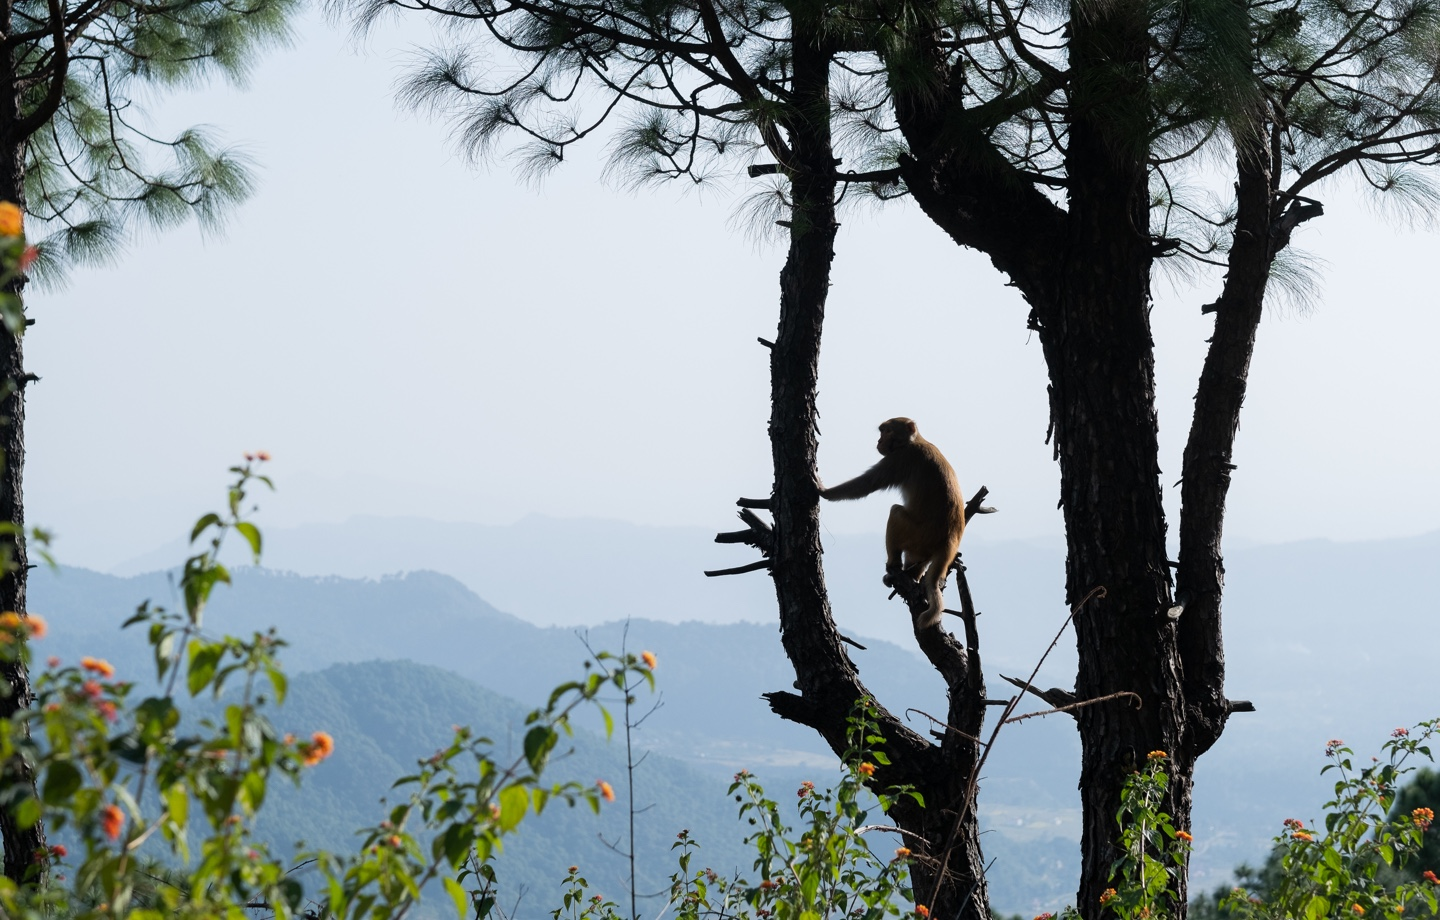 Monkey Perched on Tree in India Header